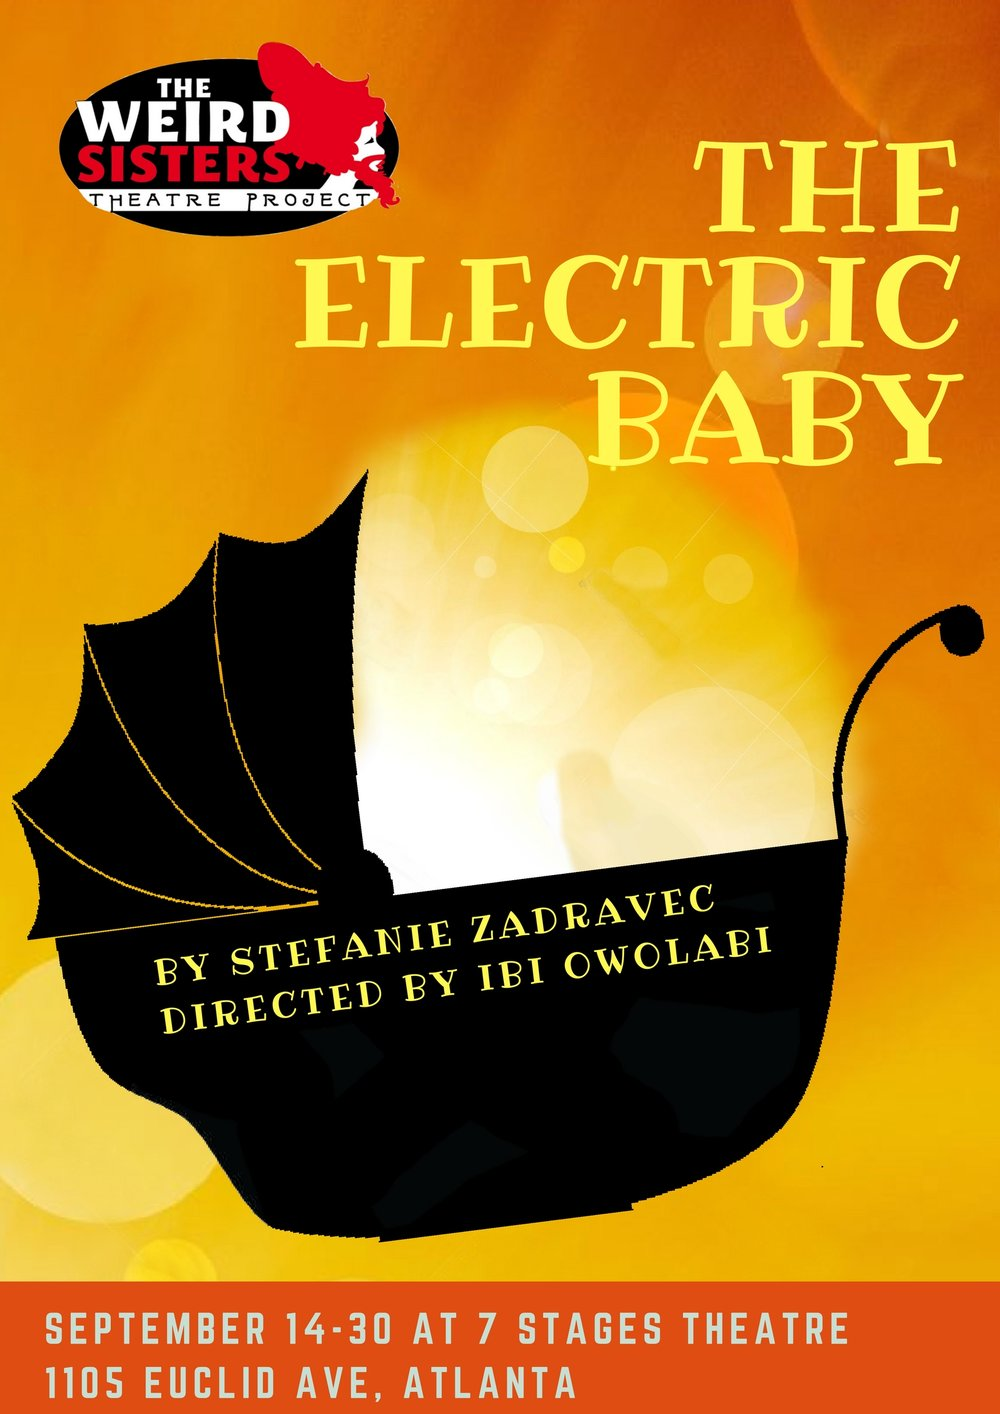 Electric Baby (1) (1).jpg